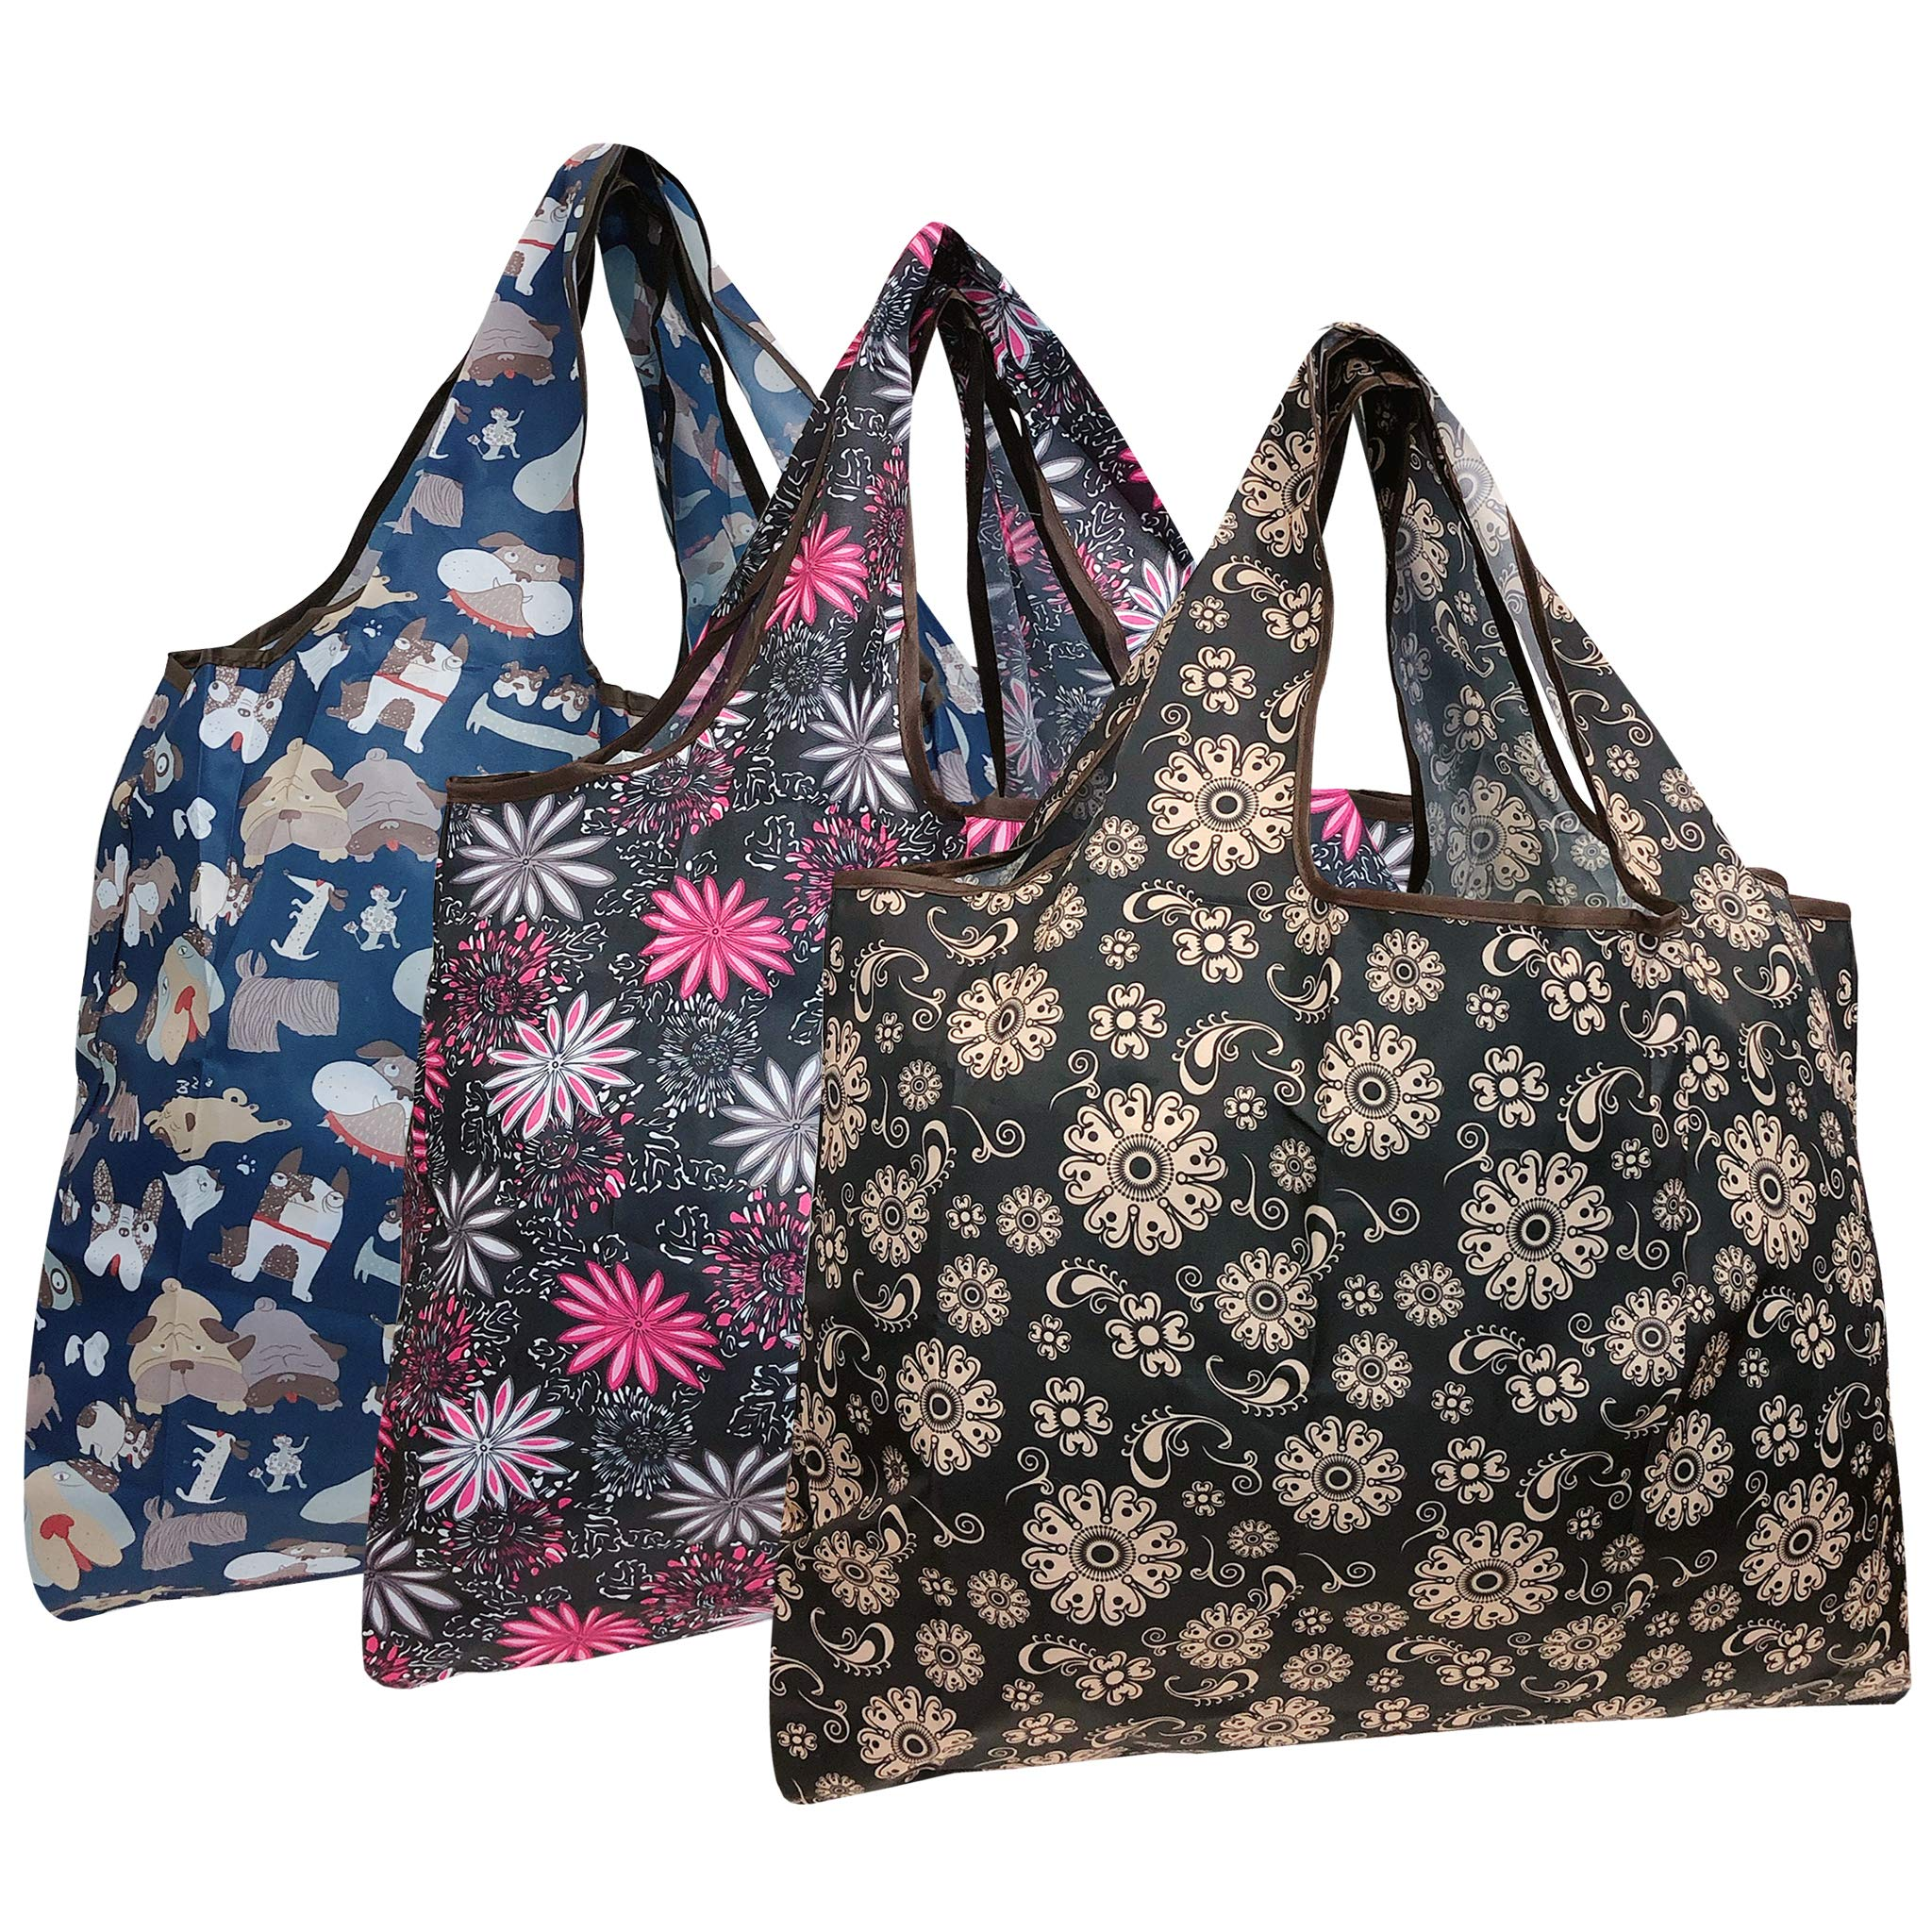 Wrapables Eco-Friendly Large Nylon Reusable Shopping Bags (Set of 3), Dogs & Flowers